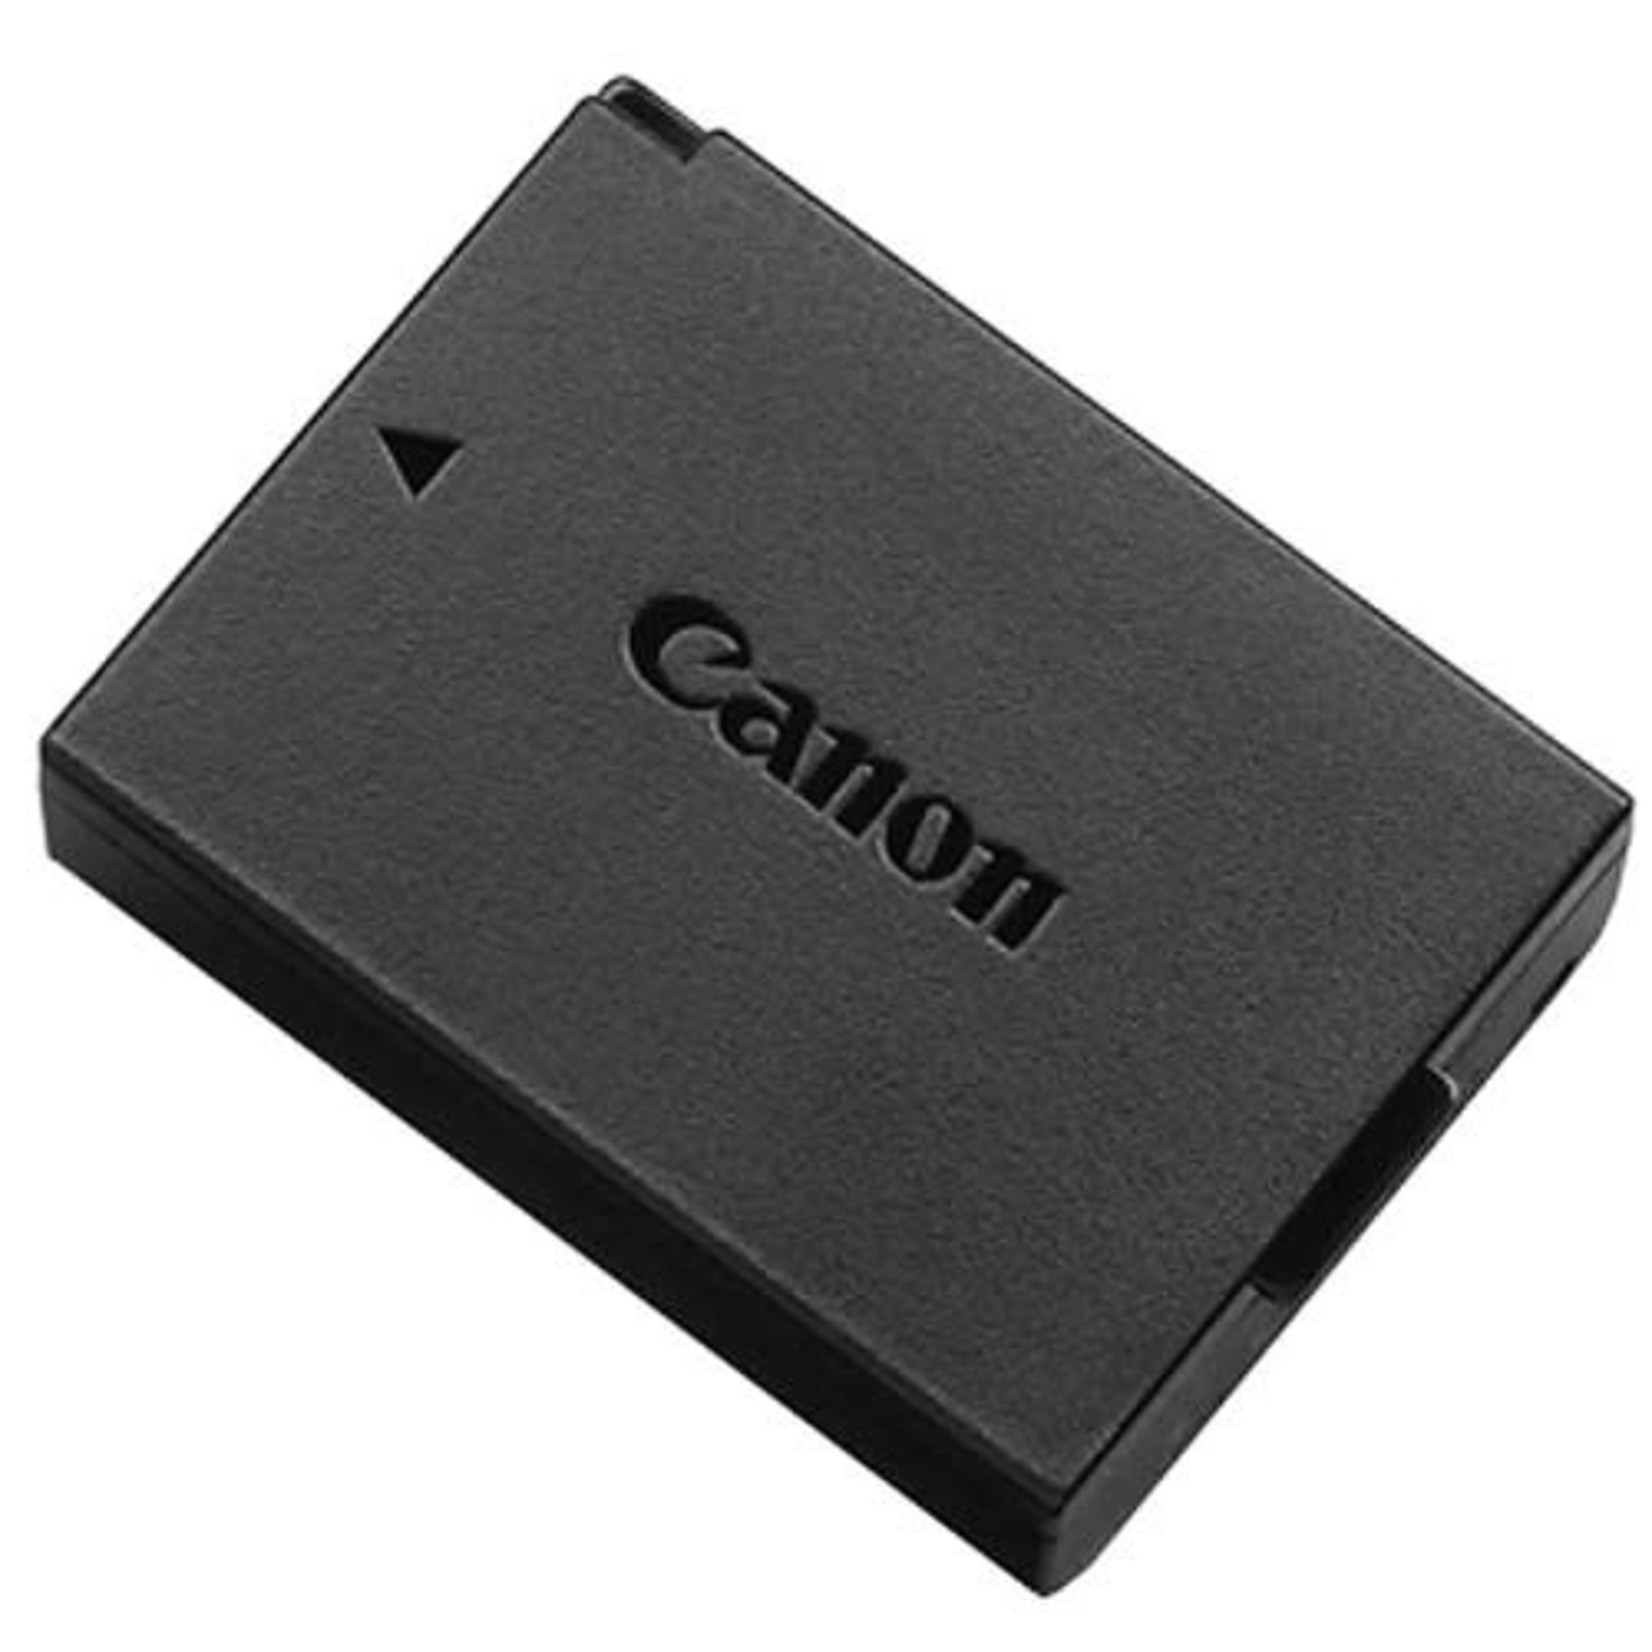 Canon Canon LP-E10 Lithium-Ion Battery Pack